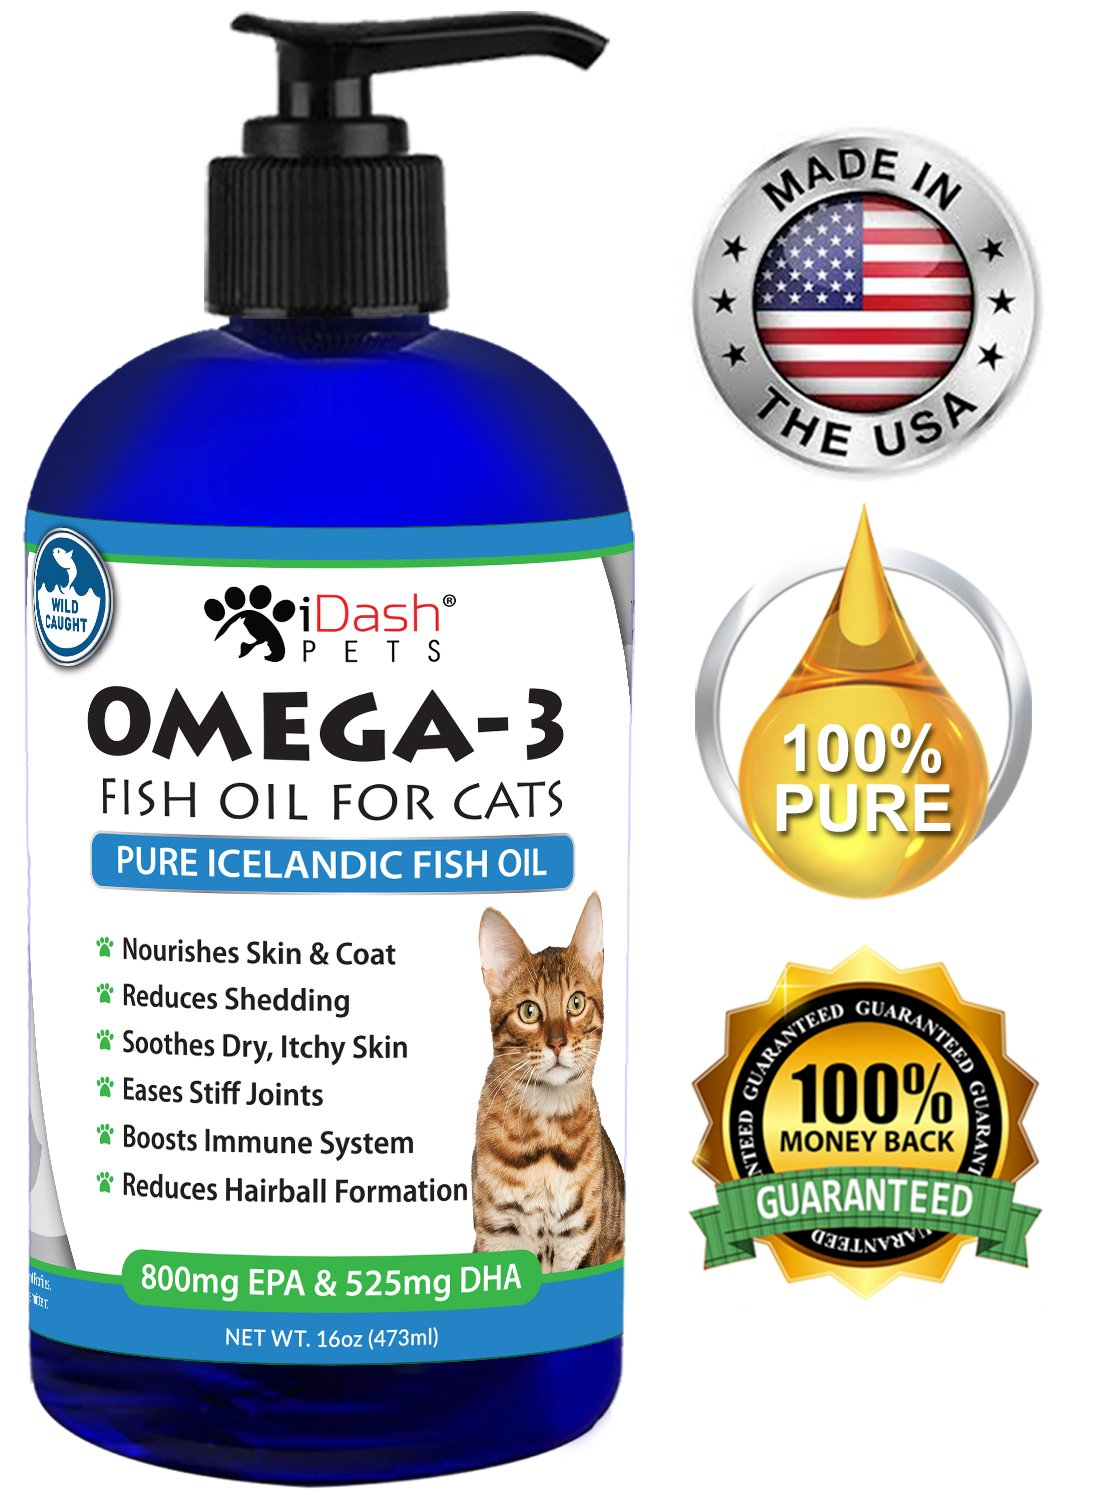 Ultra Pure Omega 3 Fish Oil for Cats– Reduces Shedding & Hairball Formation, Soothes Dry Itchy Skin, Rich Source of Essential EPA/DHA Fatty Acids, Fresh Wild Caught Cat Fish Oil, Odor Free, 16 oz pump